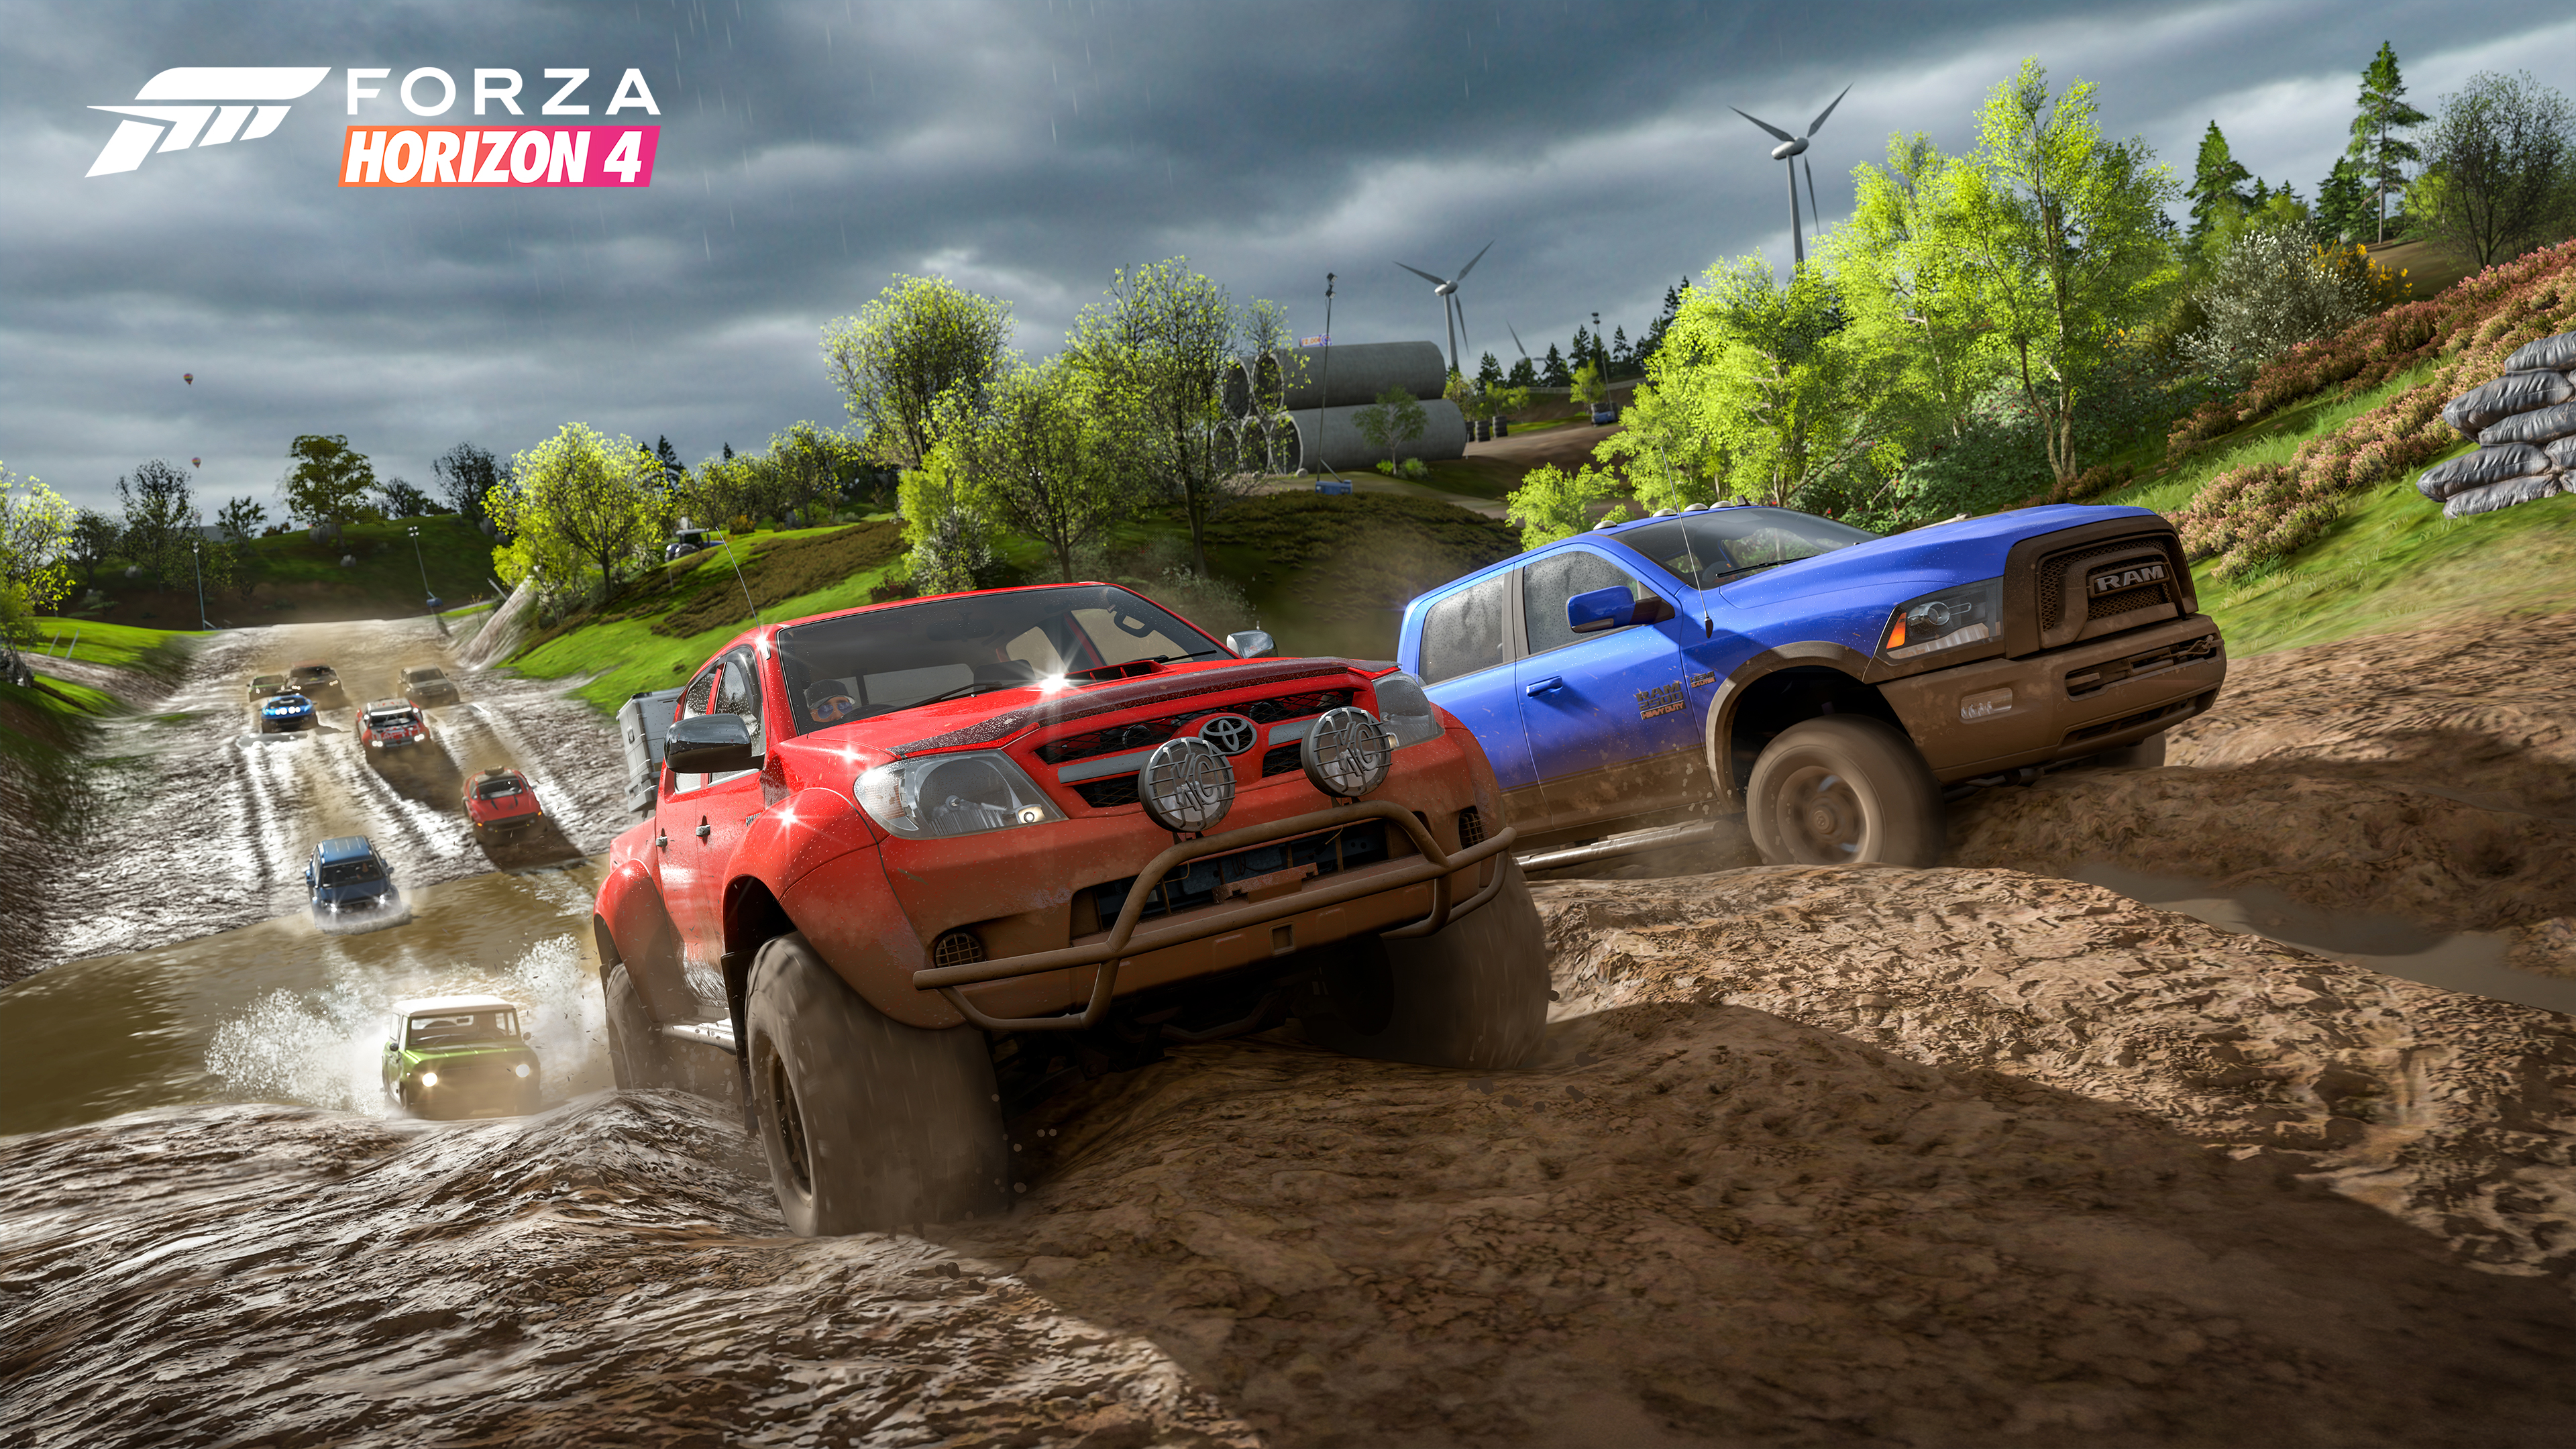 'Forza Horizon 4' screenshot courtesy of Microsoft